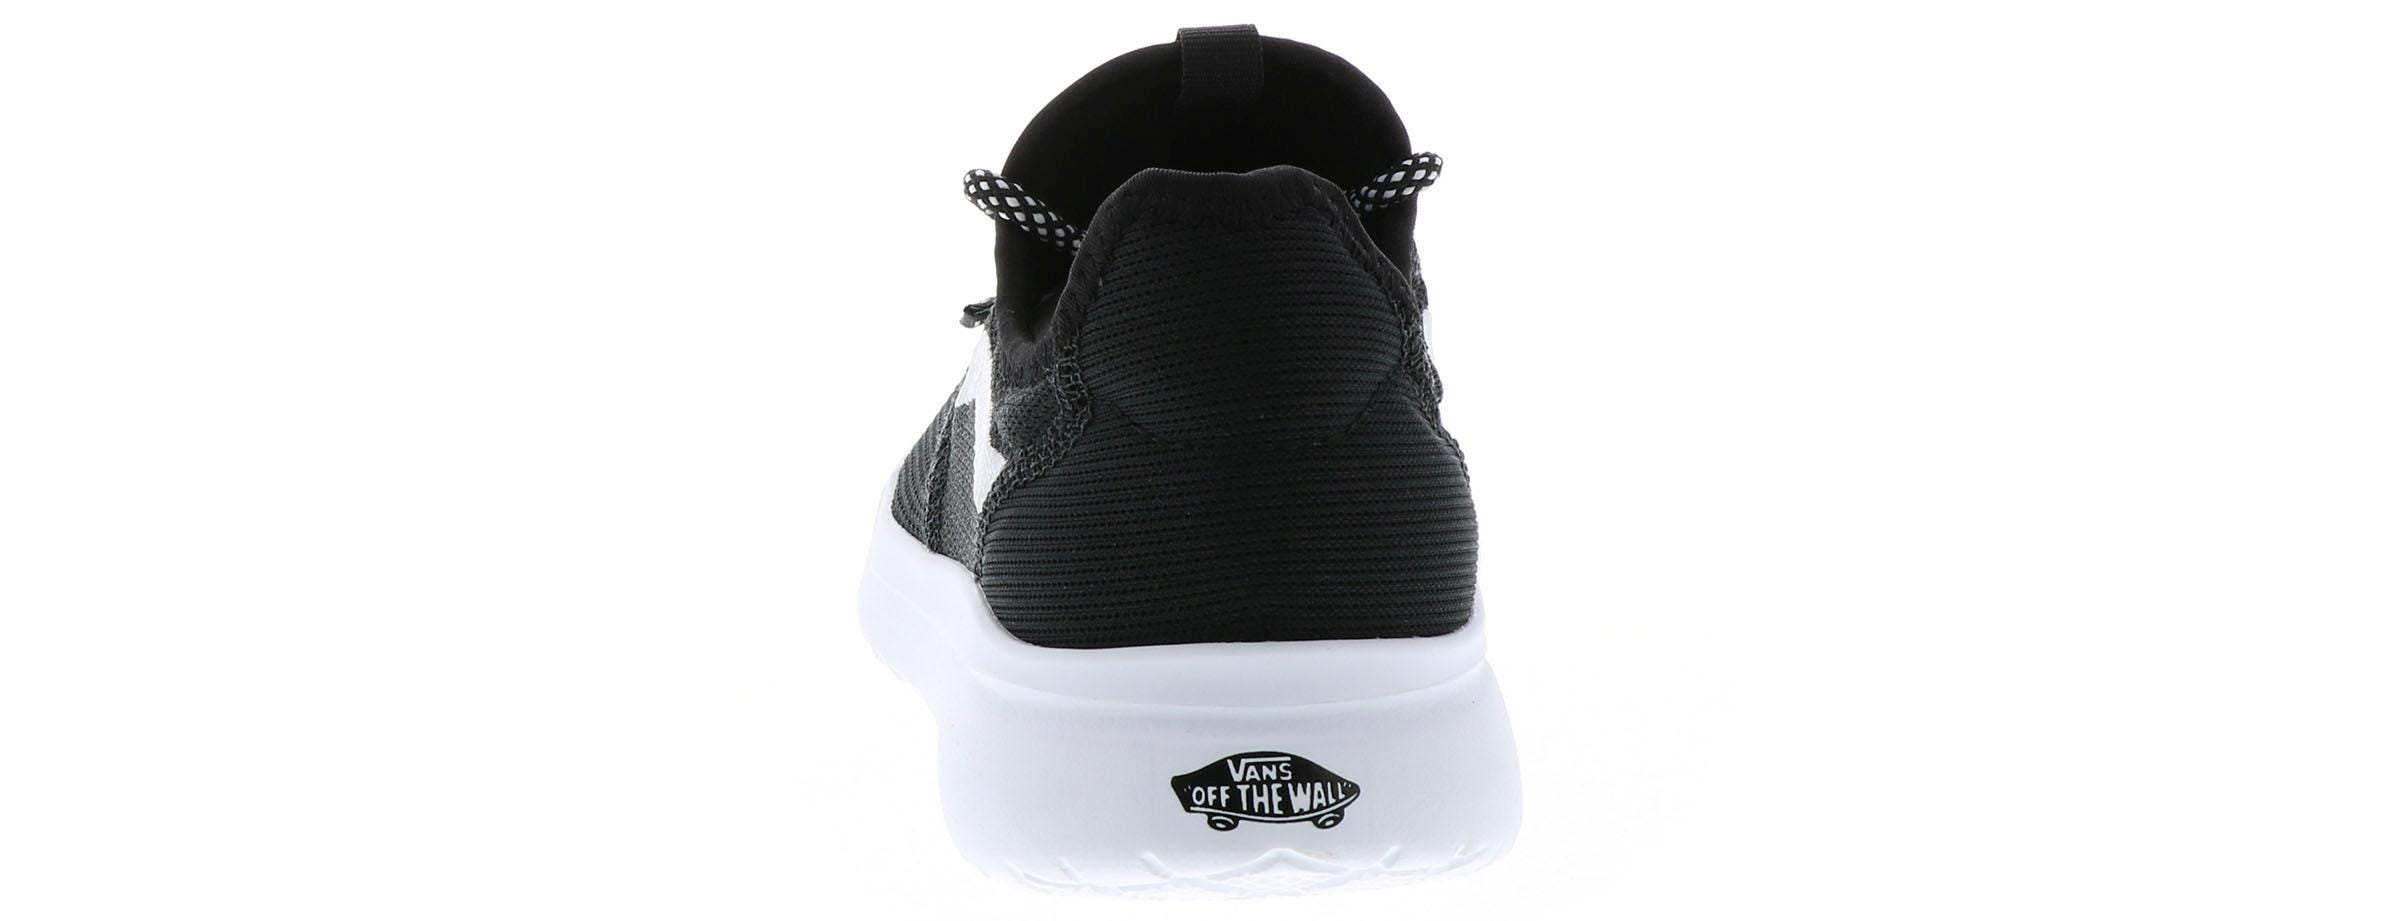 Women's Vans Cerus Lite Black | Shoe Sensation